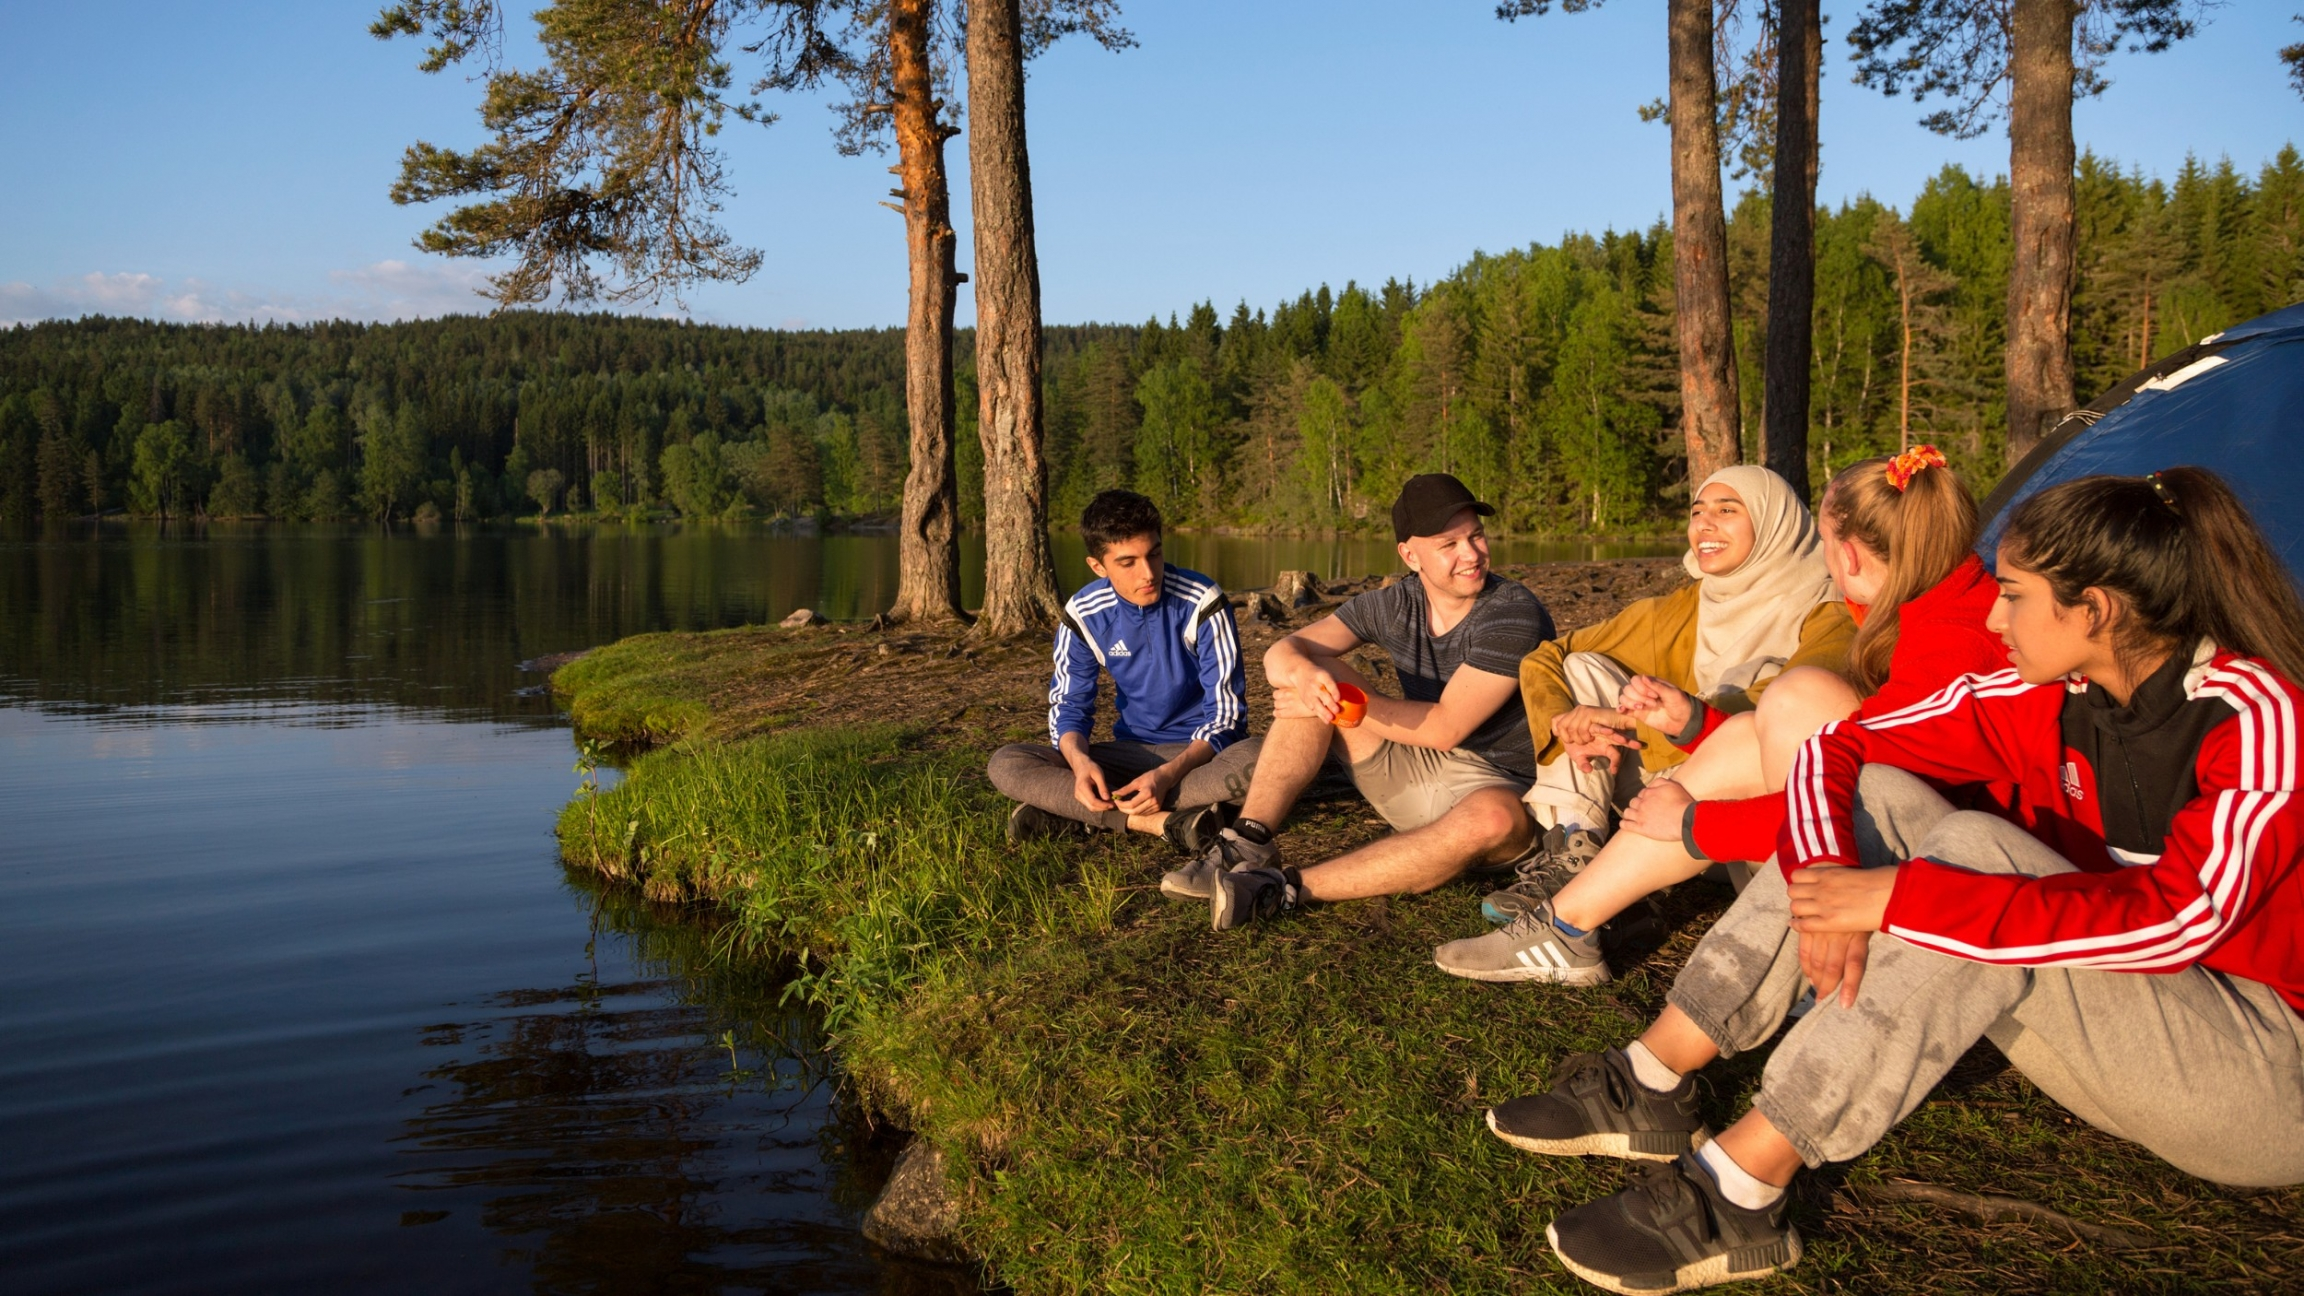 Norwegian youth sit on the ground while spending time outdoors on a lake.